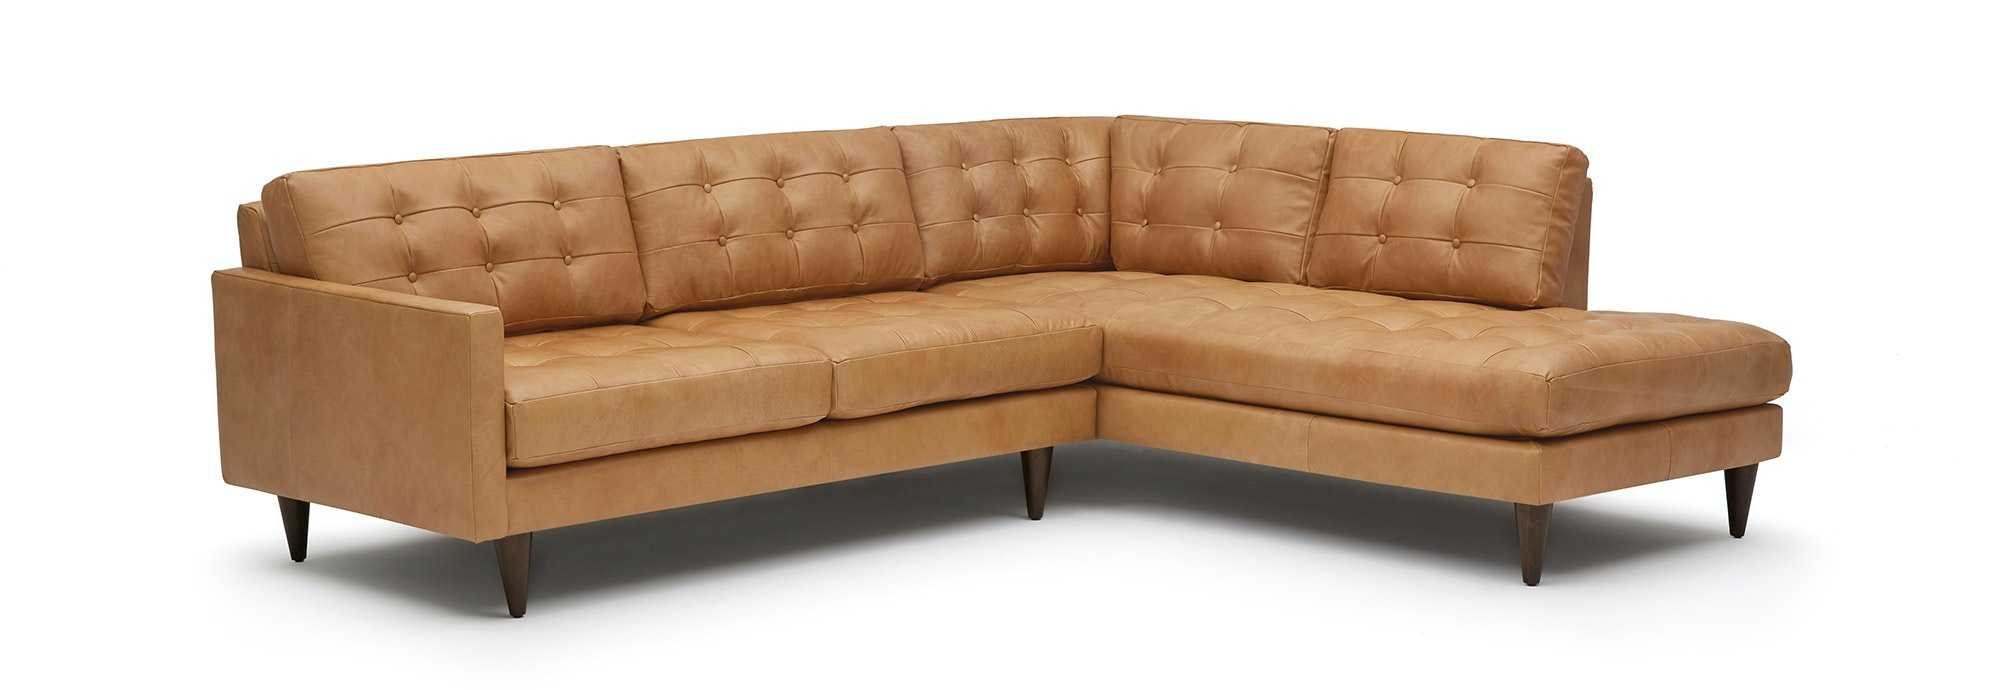 Eliot Leather Sectional With Bumper